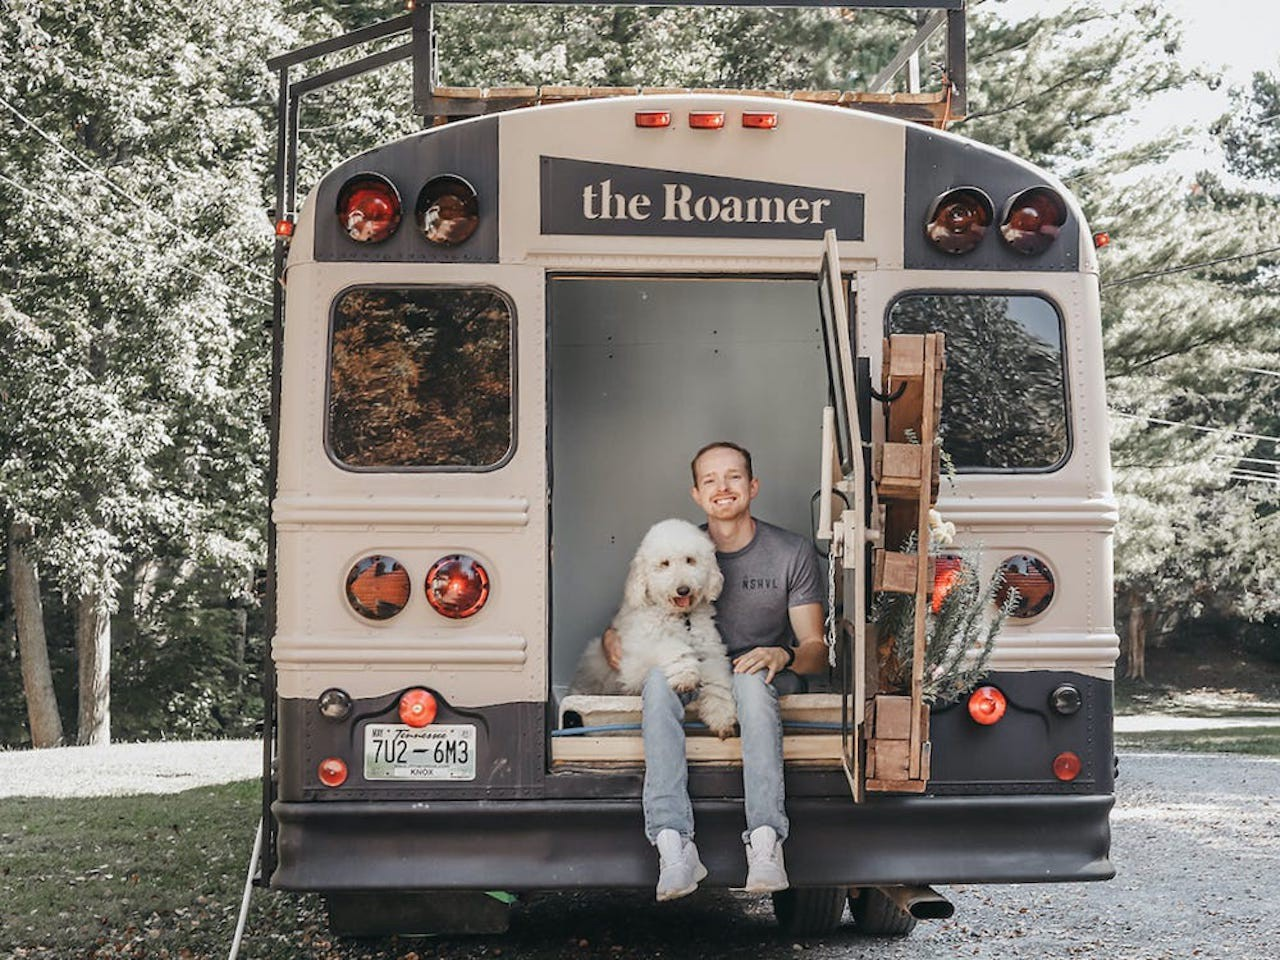 Caleb Brackney and his dog sitting in the back of the school bus.